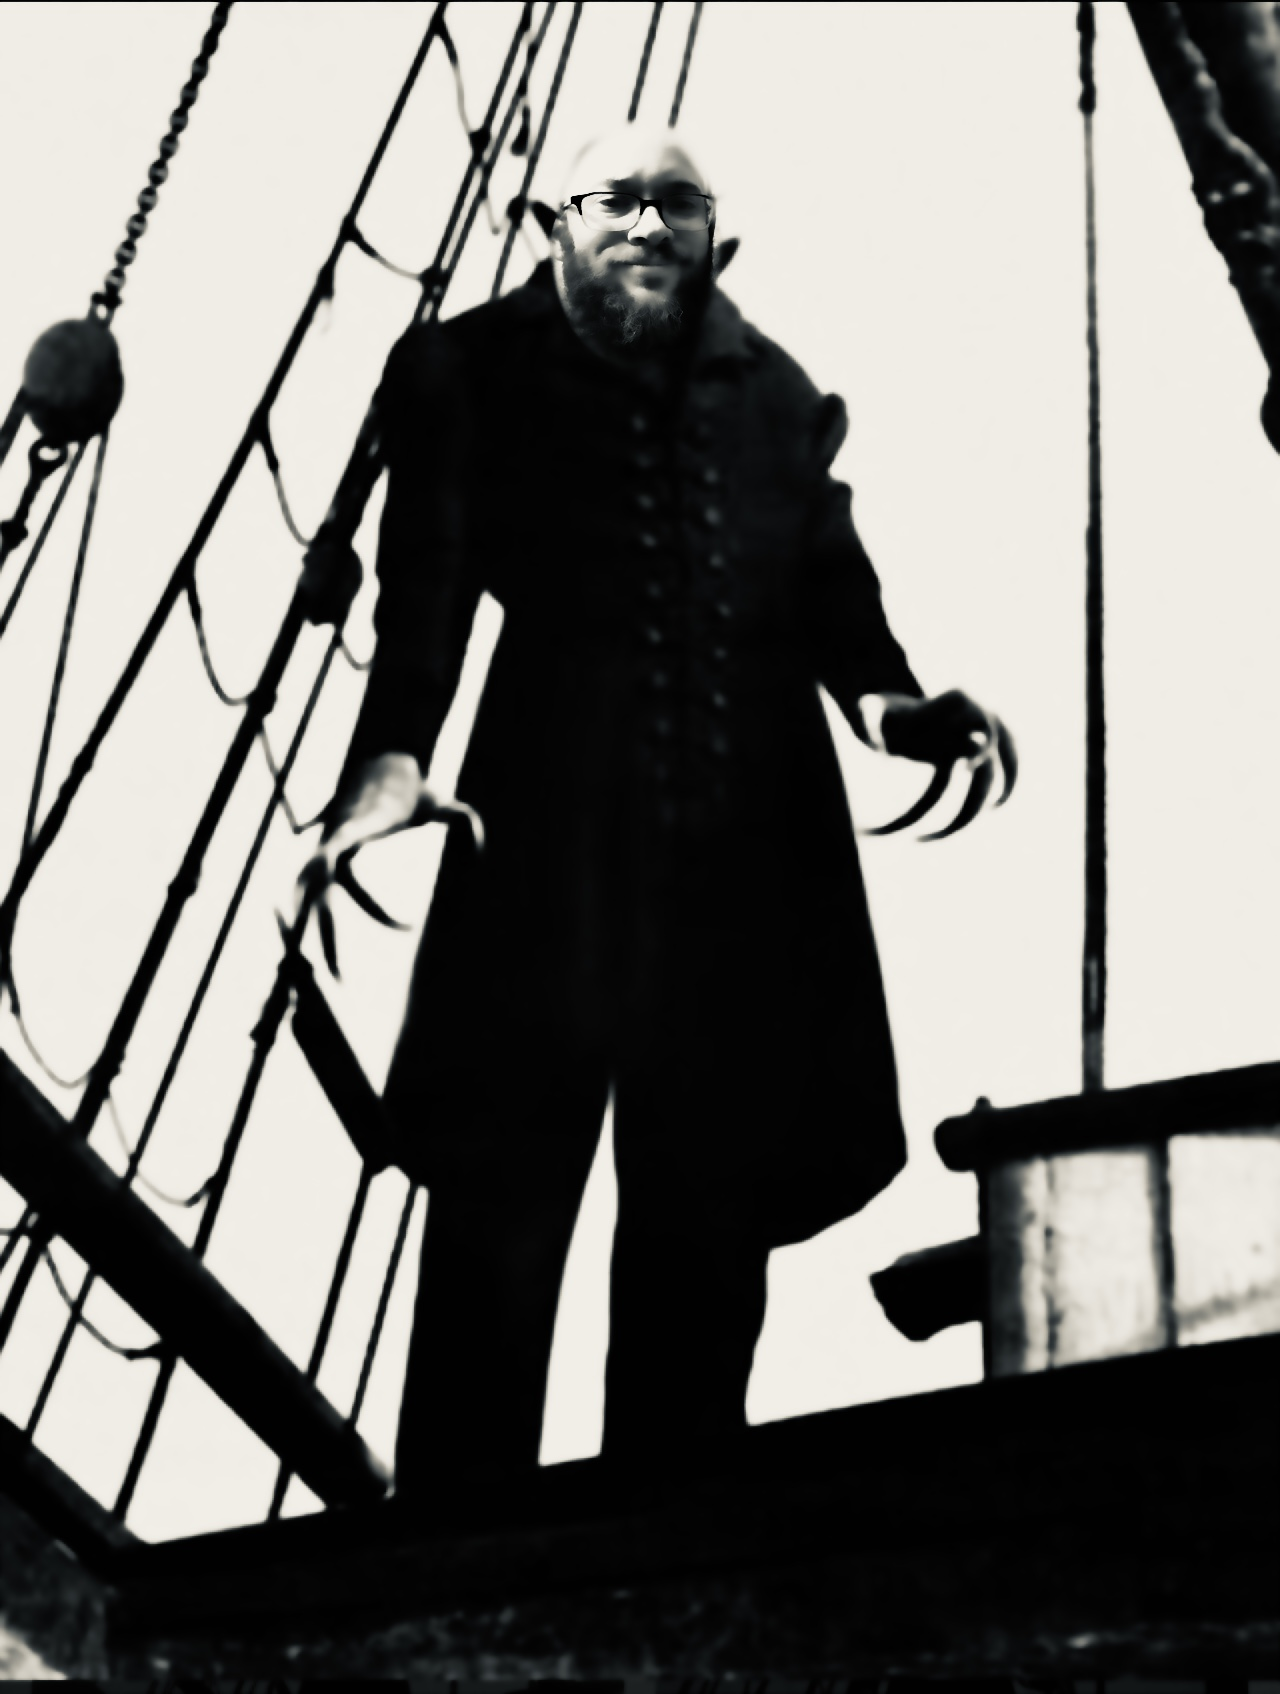 Spooky pirate with bearded man's face superimposed